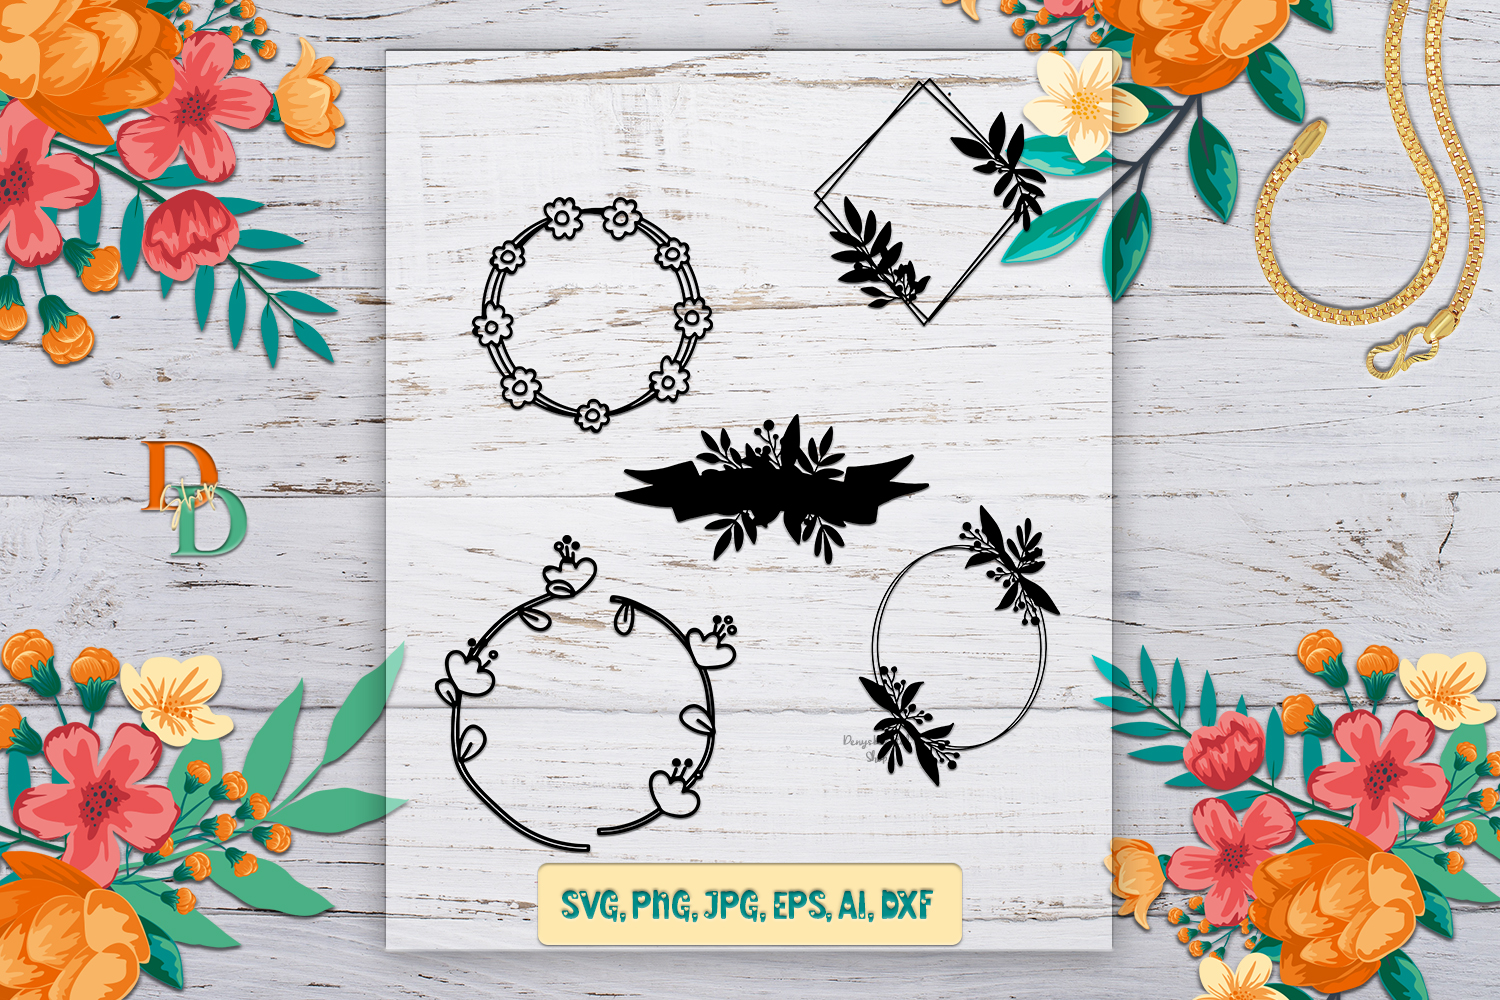 Svg Cut 3d Sunflower Svg Free Best Premium Svg Silhouette Create Your Diy Projects Using Your Cricut Explore Silhouette And More The Free Cut Files Include Psd Svg Dxf Eps And